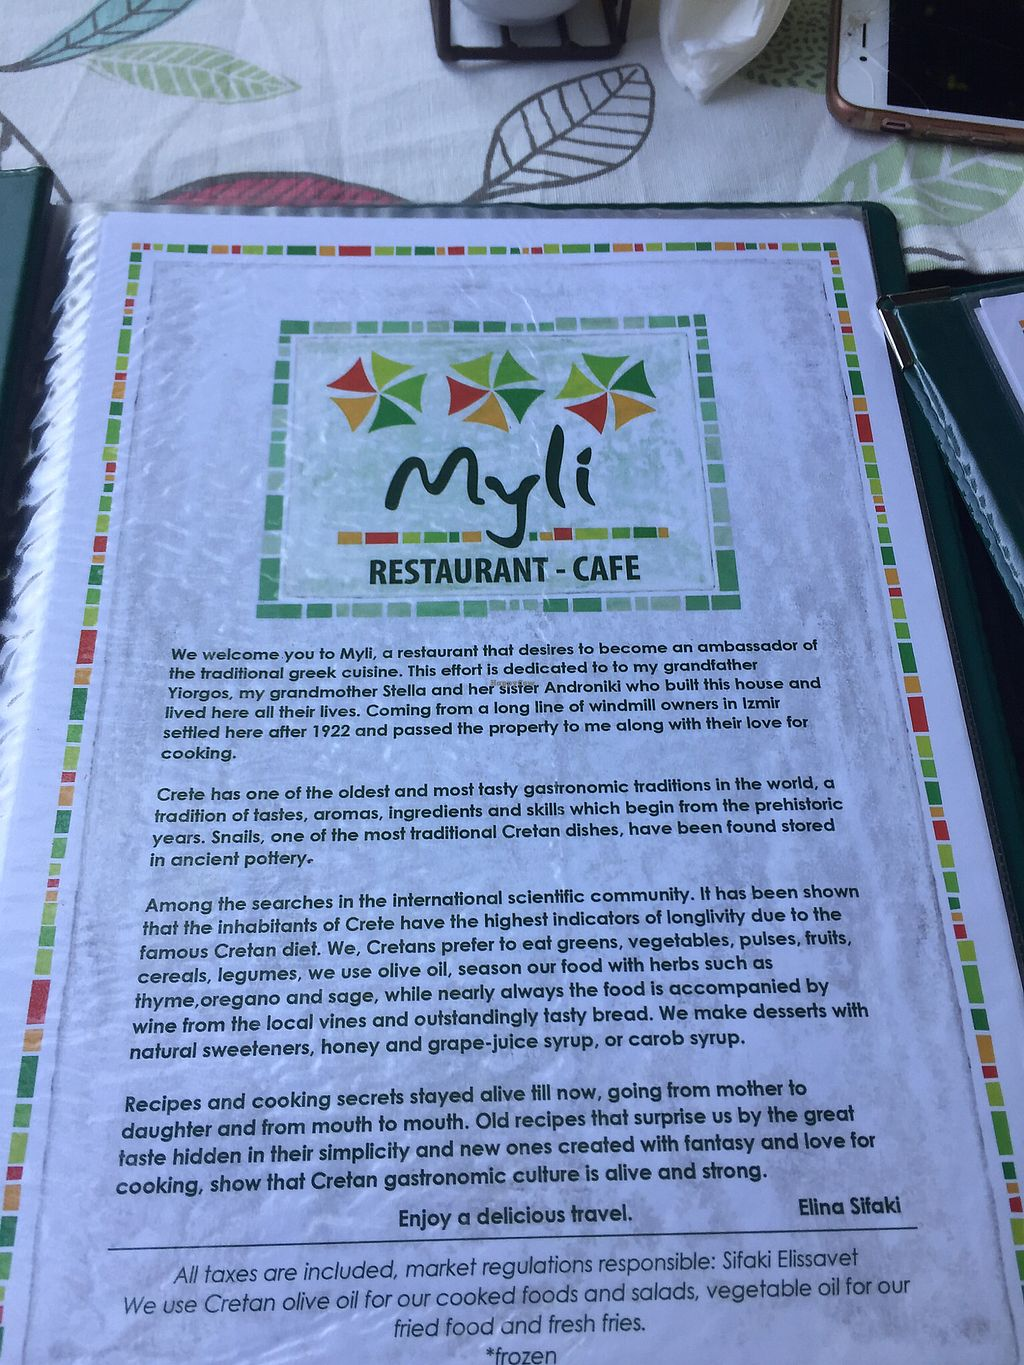 """Photo of Myli Restaurant Cafe  by <a href=""""/members/profile/Sophiapalmqvist"""">Sophiapalmqvist</a> <br/>the menu <br/> June 30, 2017  - <a href='/contact/abuse/image/94363/275337'>Report</a>"""